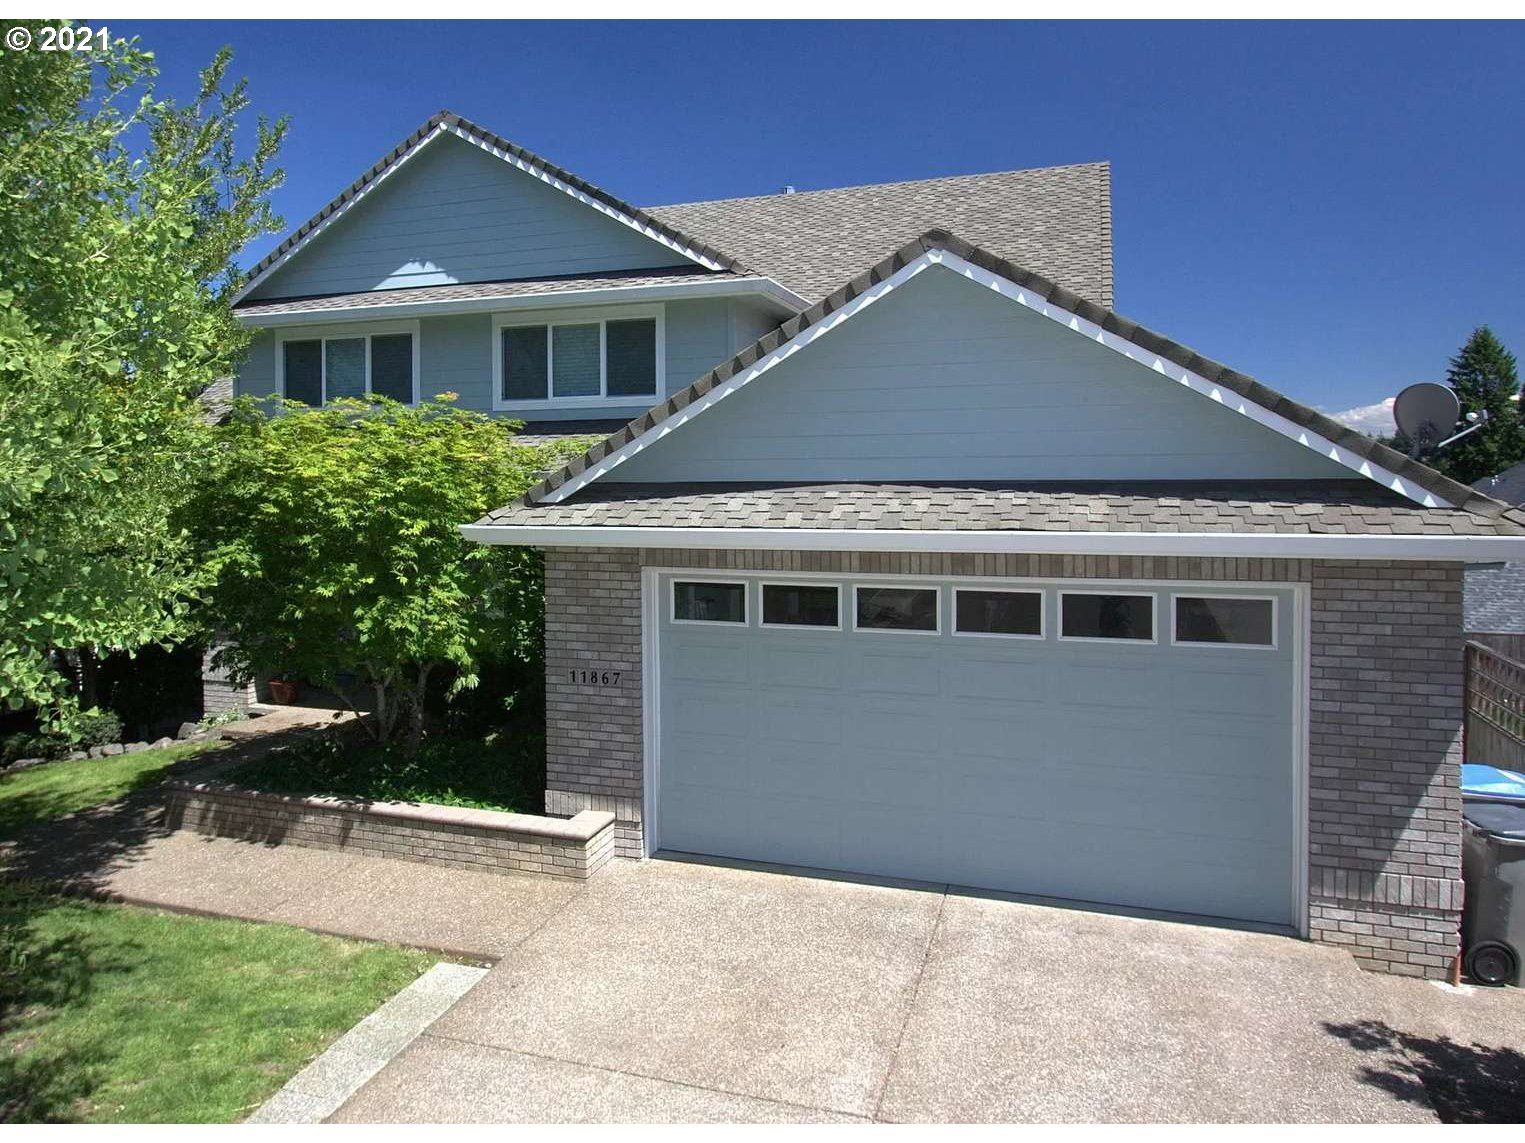 11867 SW TREEHILL CT, Tigard, OR 97224 - MLS#: 21063115